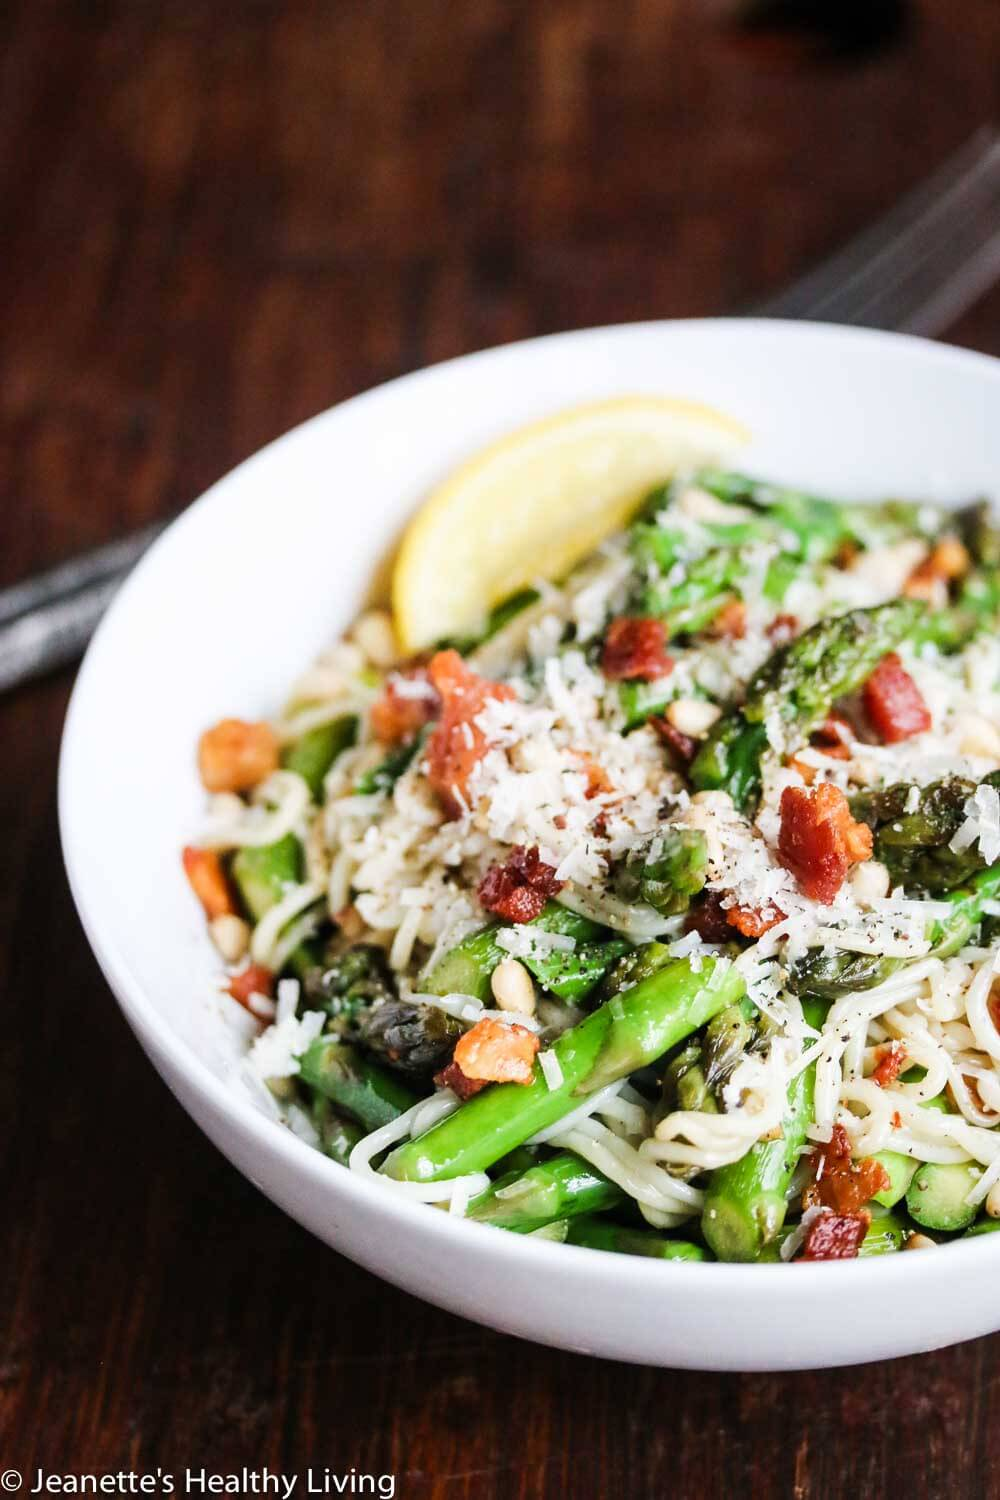 Gluten-Free Low Carb Pasta with Asparagus Pancetta and Pine Nuts  - this takes just 15 minutes to make - so simple and delicious!